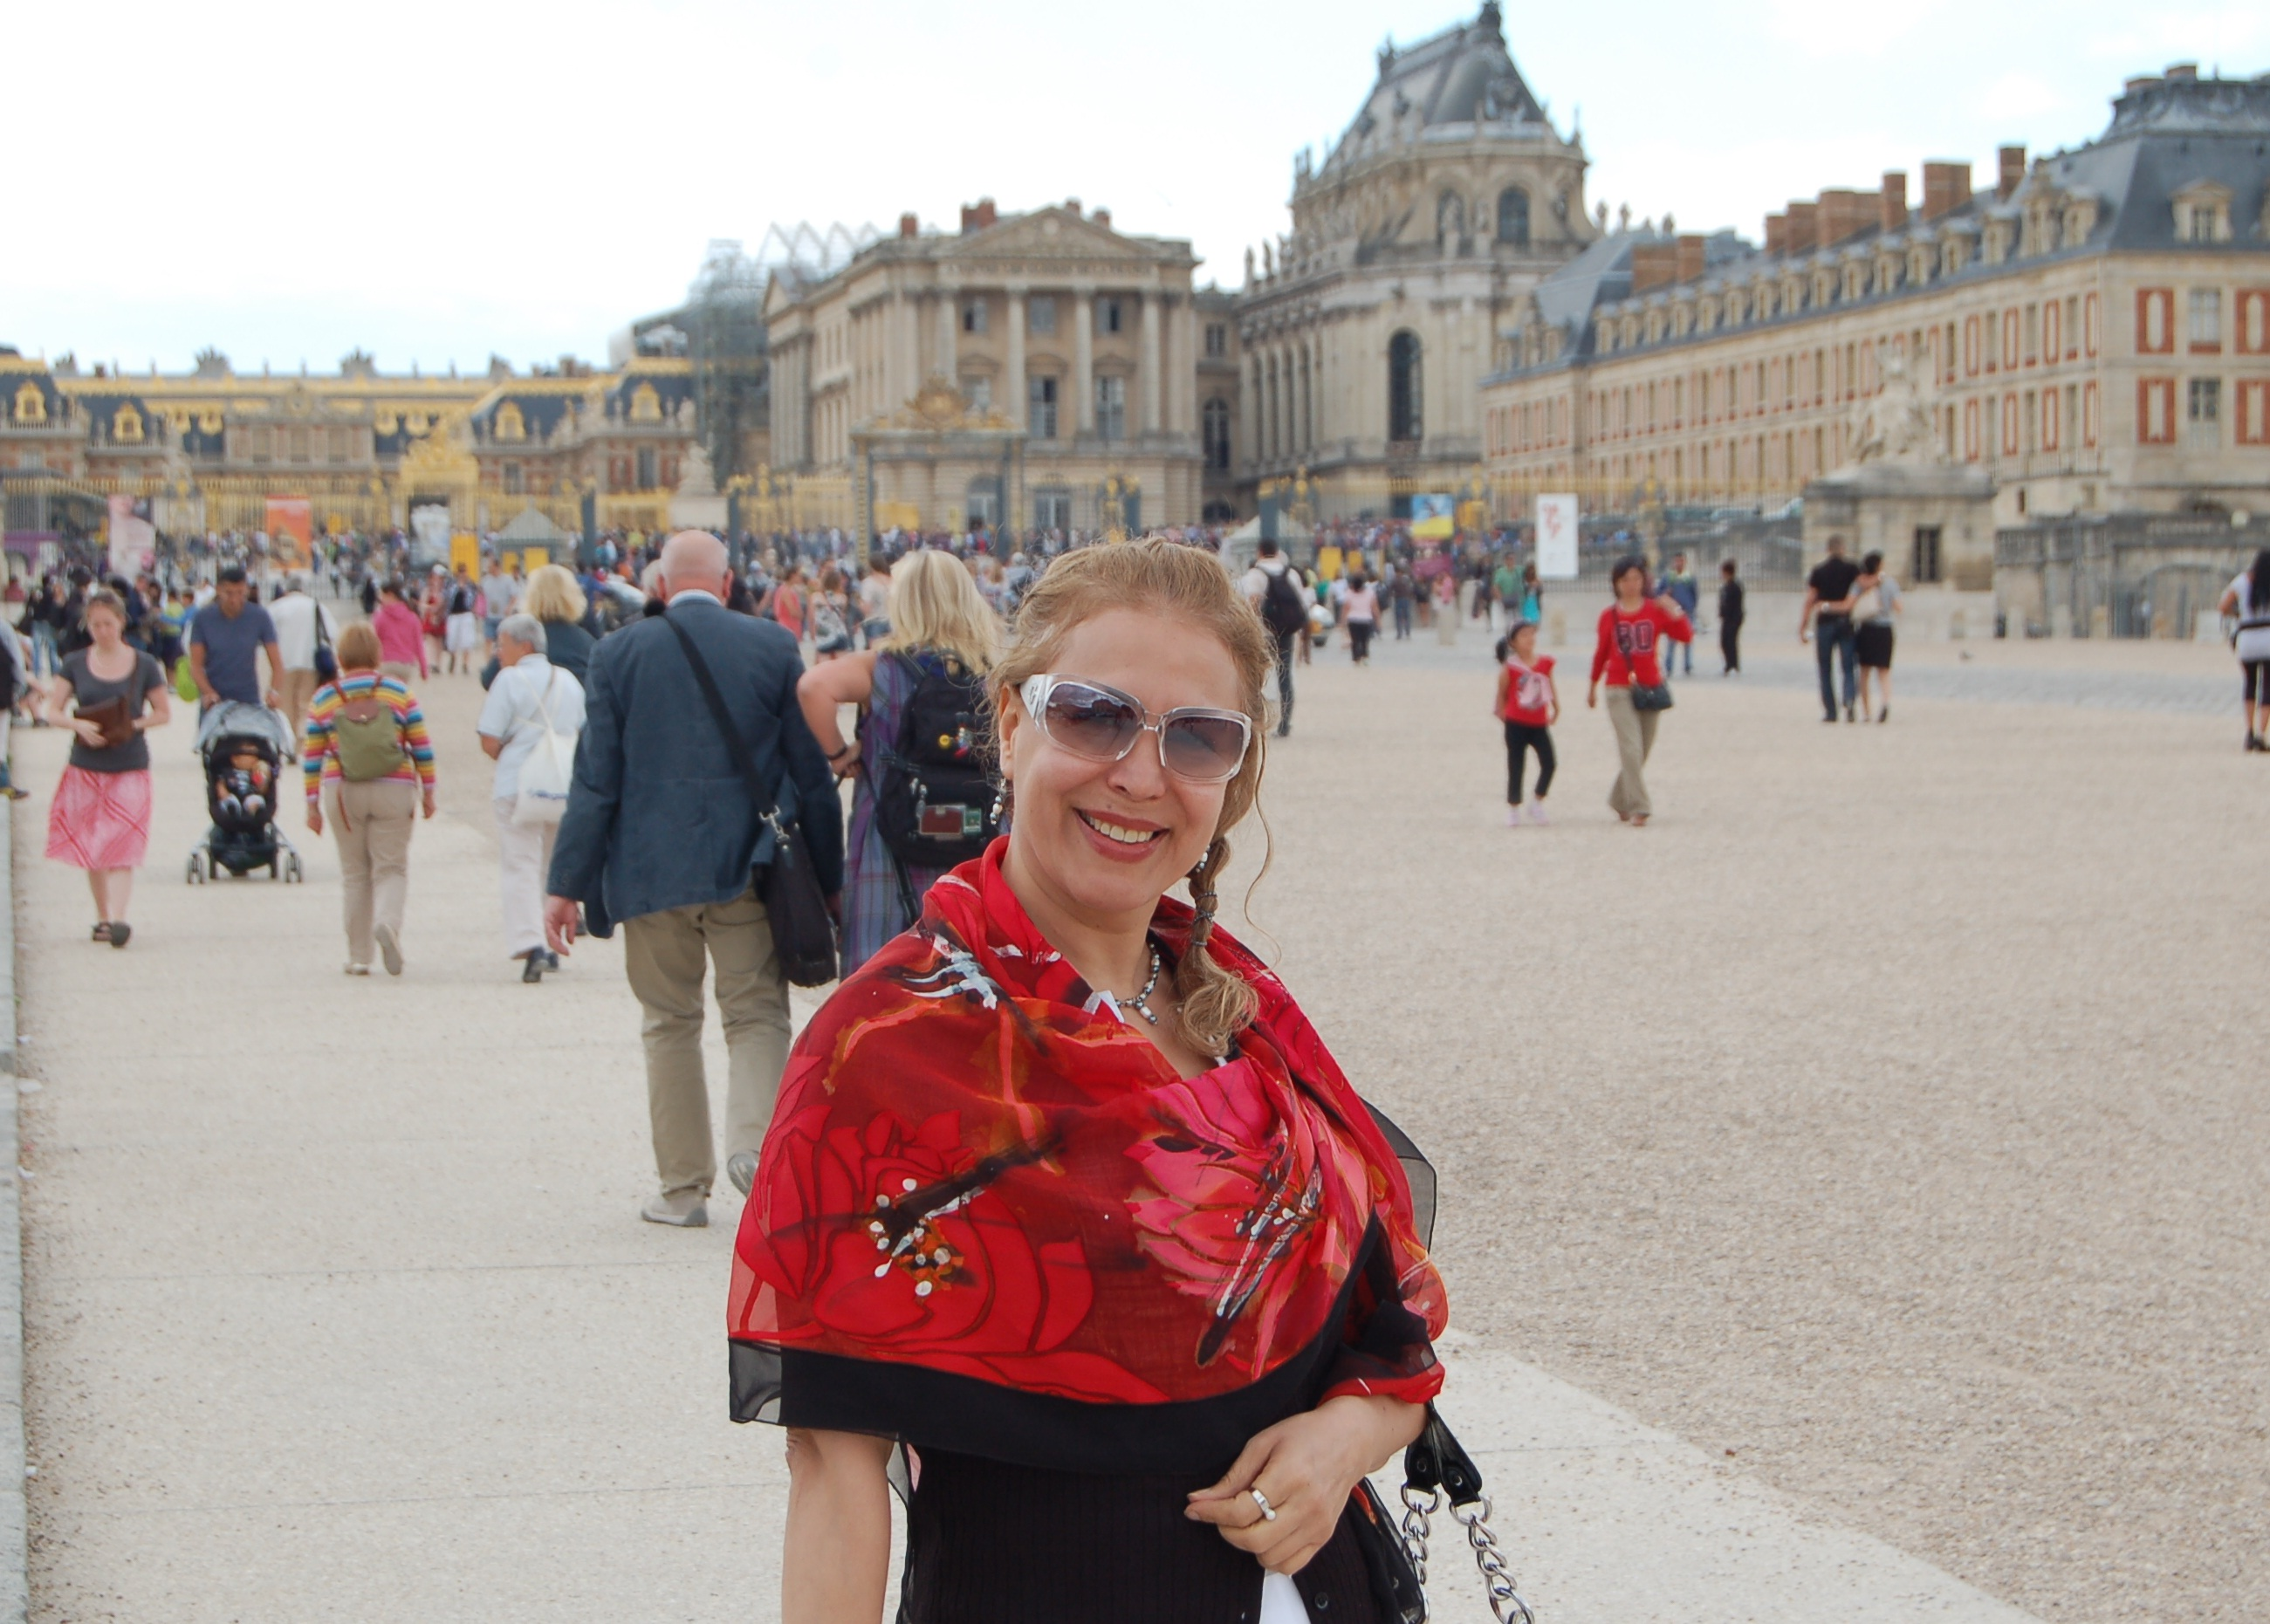 2012/Fariba in the Gardens of Versailles,Paris